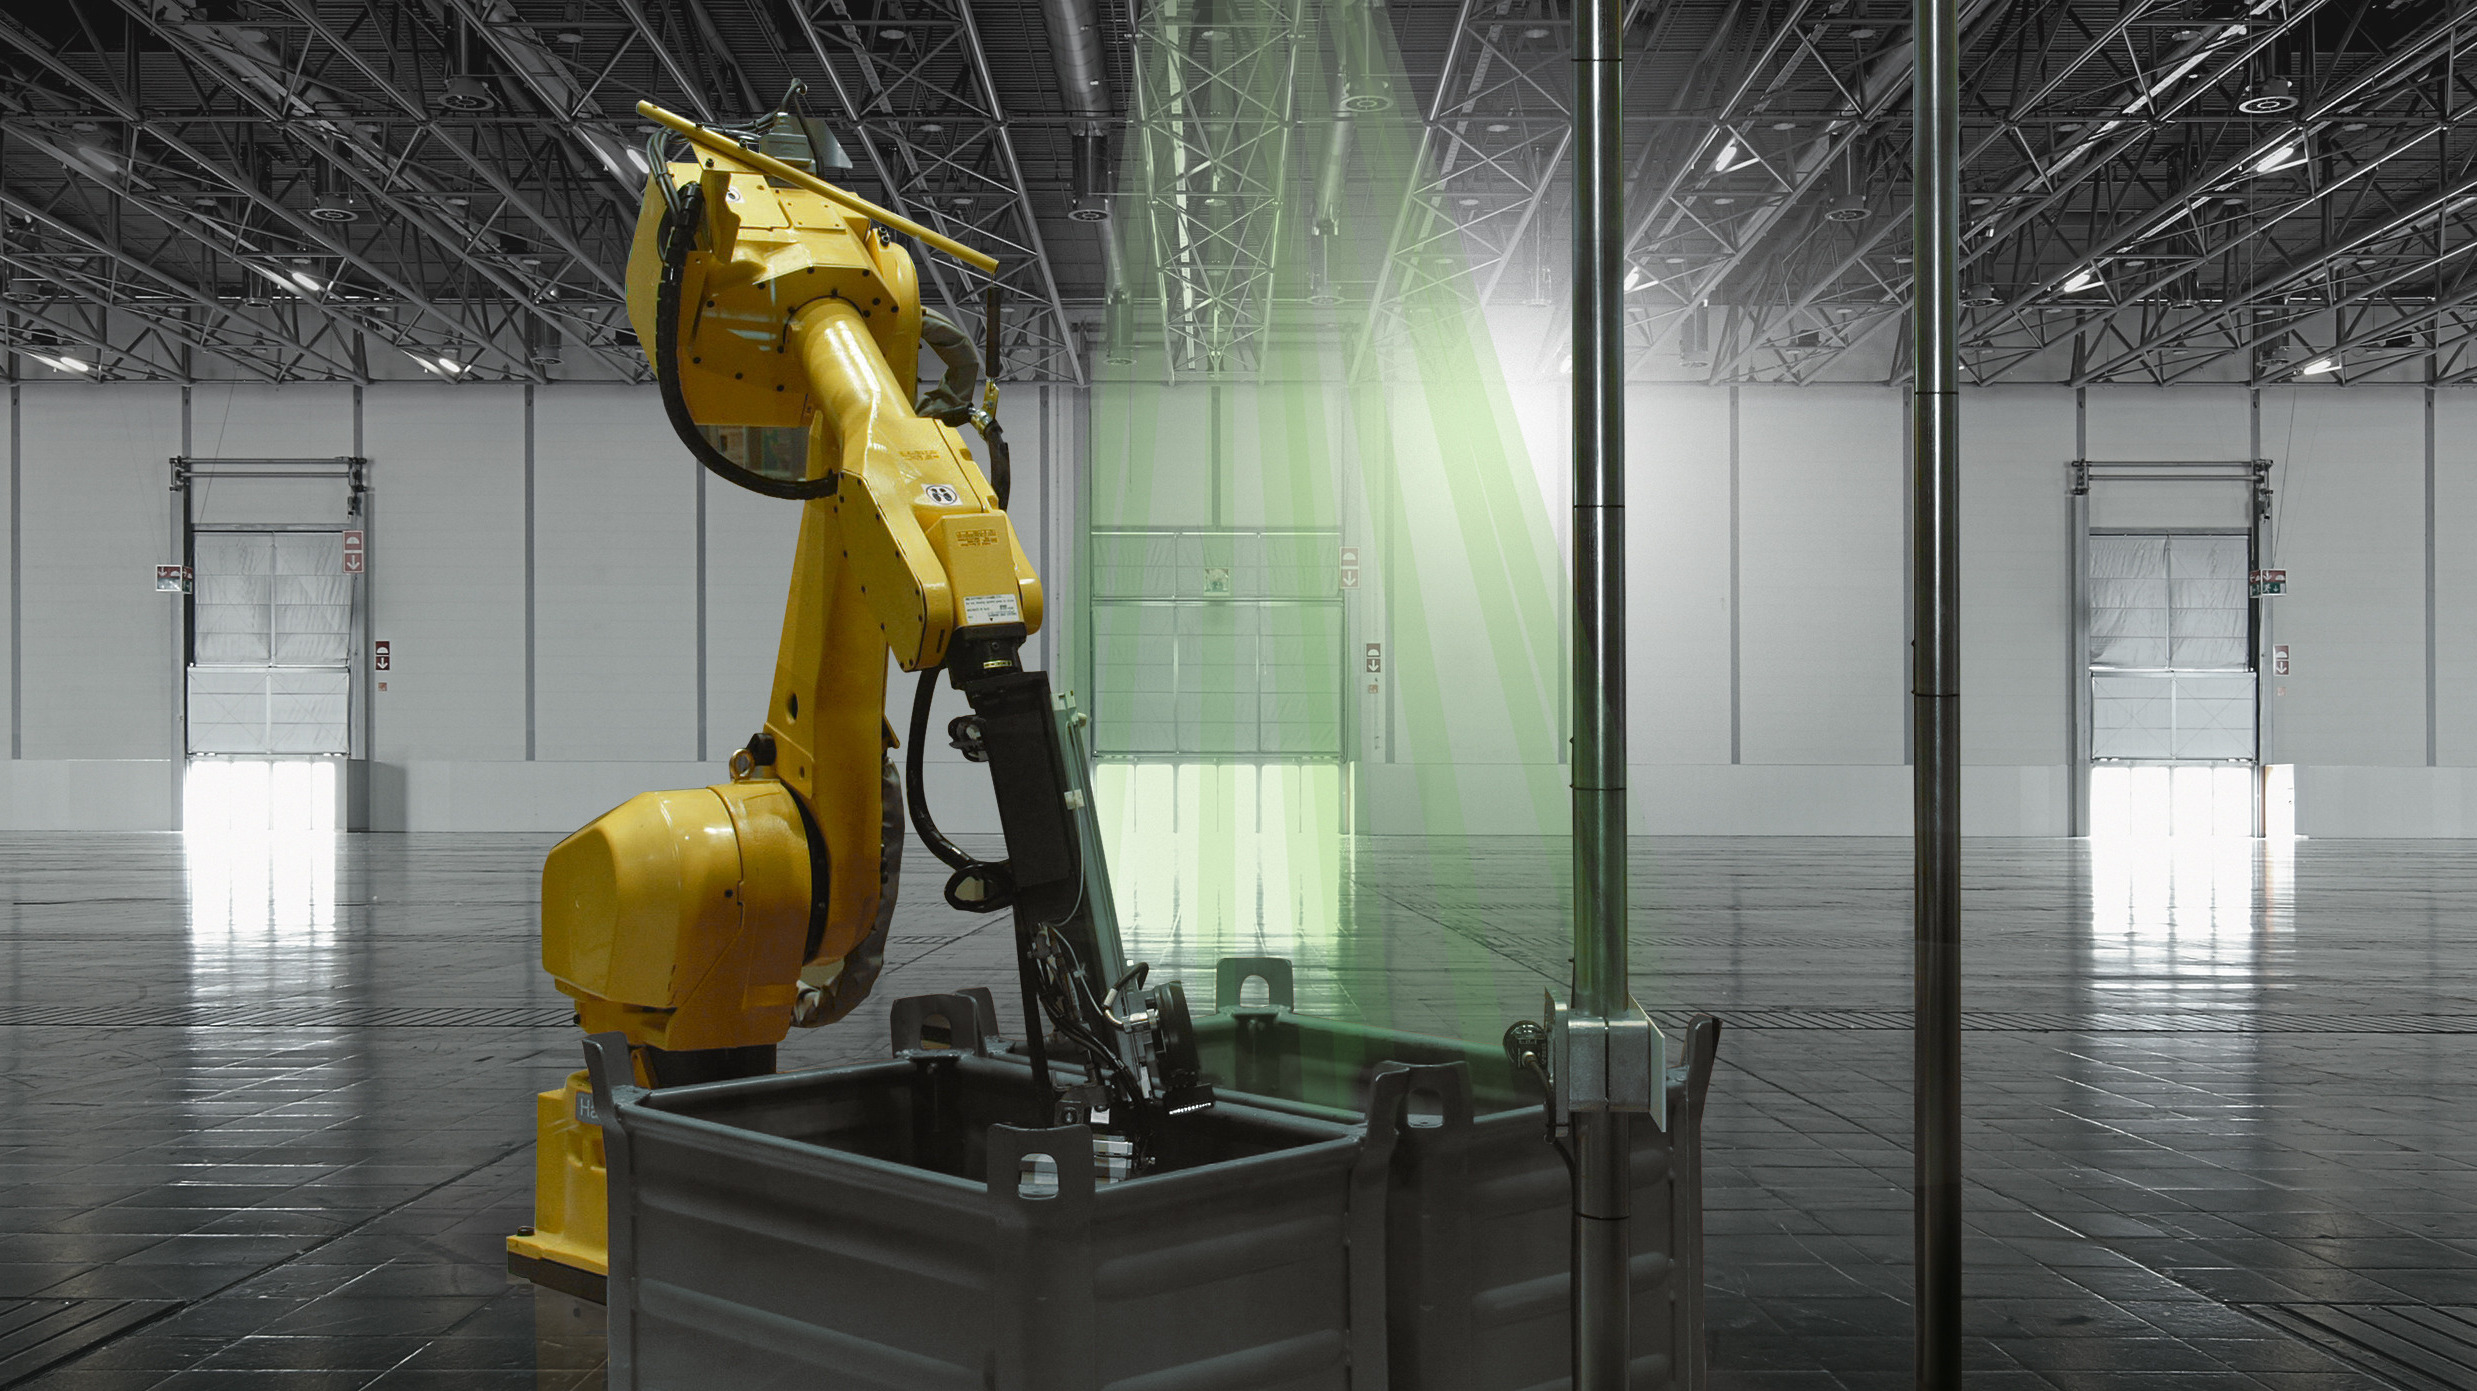 Optical recognition for cleanroom robots